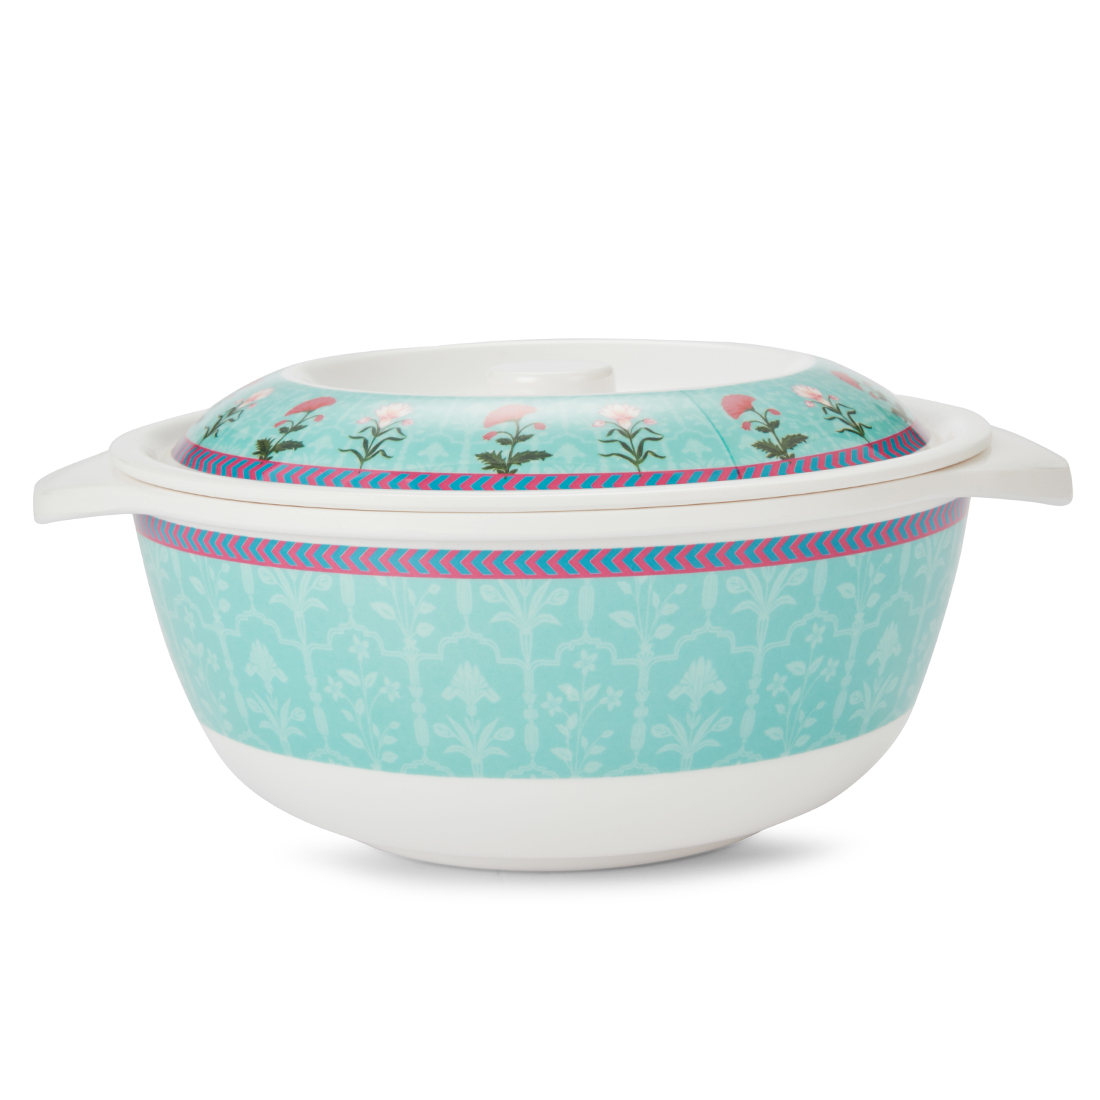 Rambagh Cassrero With Lid Casseroles in Multicolour Colour by Living Essence